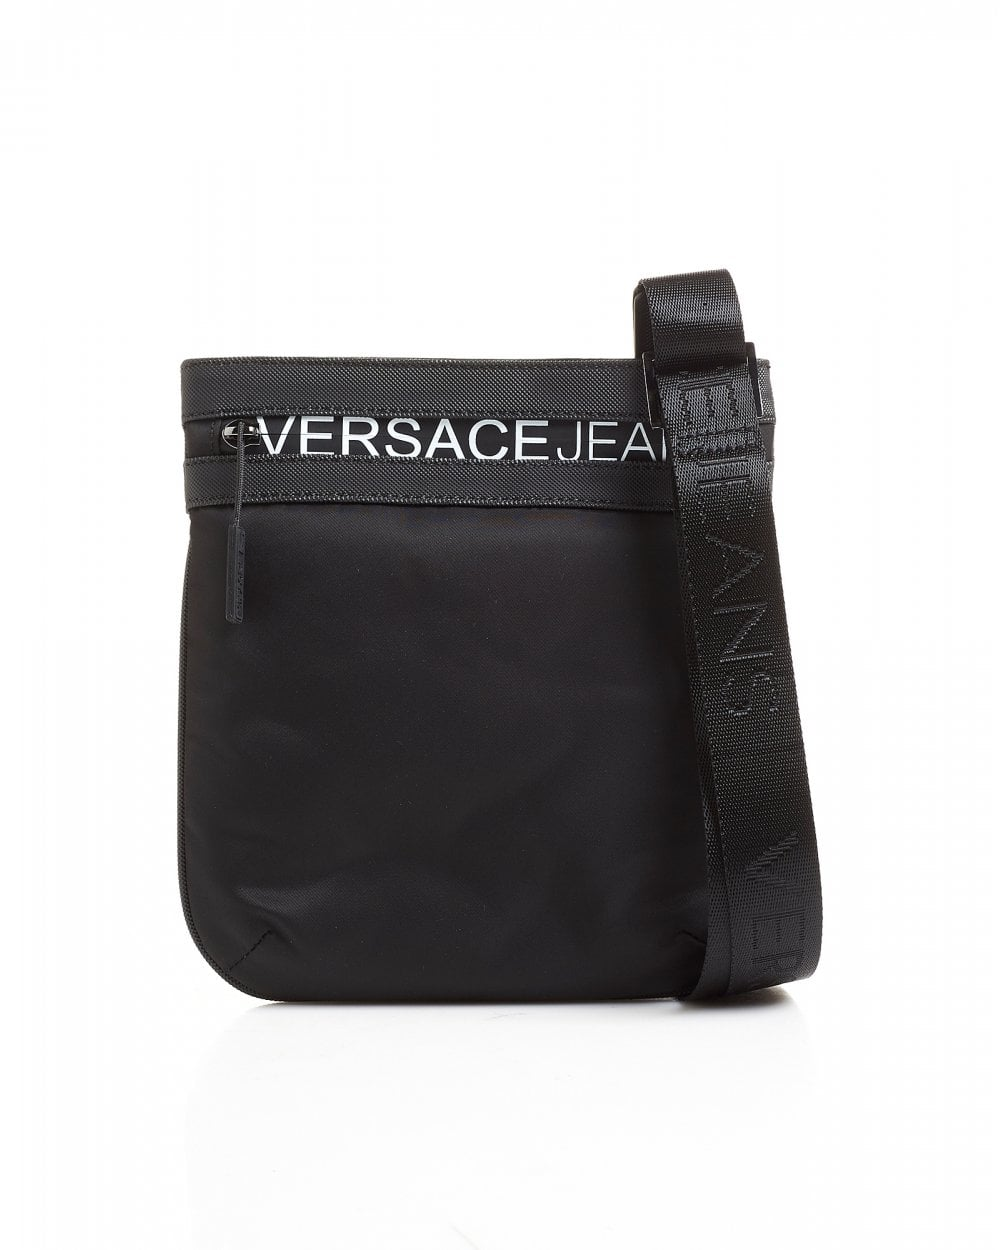 9d677d4c63 Versace Jeans Mens White Lettered Logo Black Stash Bag